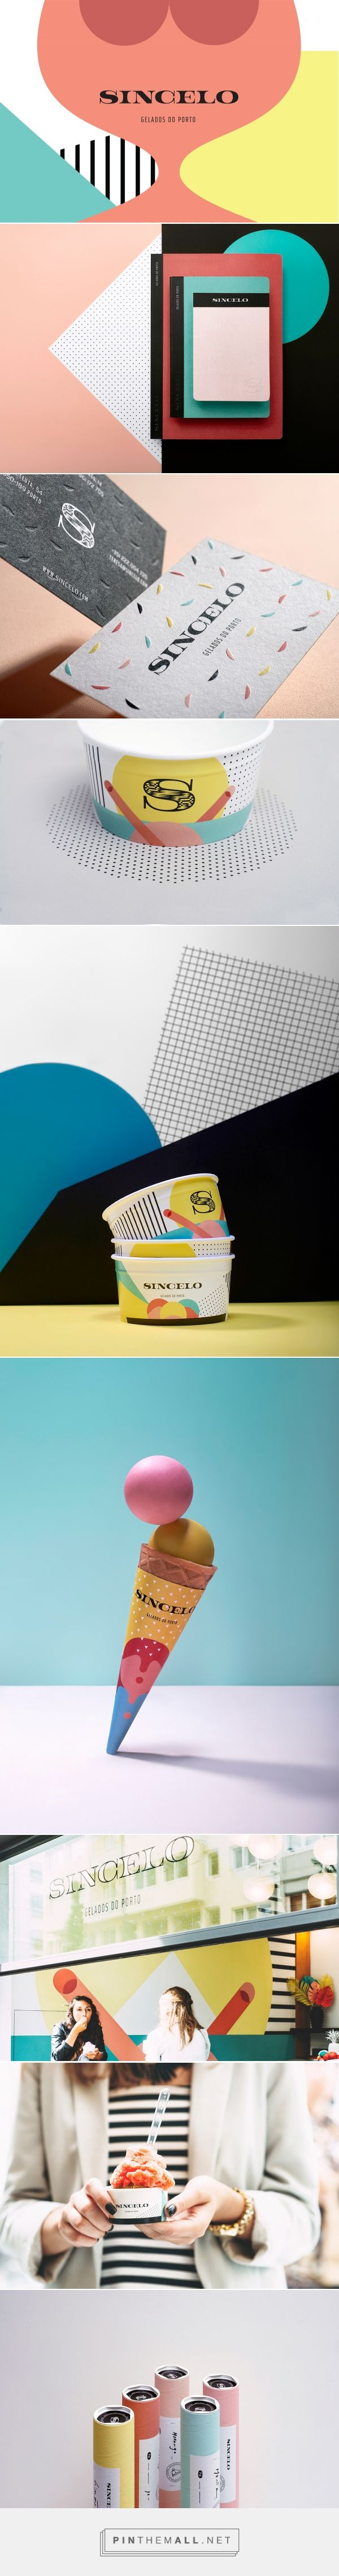 Graphic design, branding and packaging for Sincelo on Behance by This Is Pacifica Porto, Portugal curated by Packaging Diva PD. Monochrome logo and multiple dimension illustrations create a rich set of coloured contrasts, applied in space, the packaging, the postals, posters and motion design.